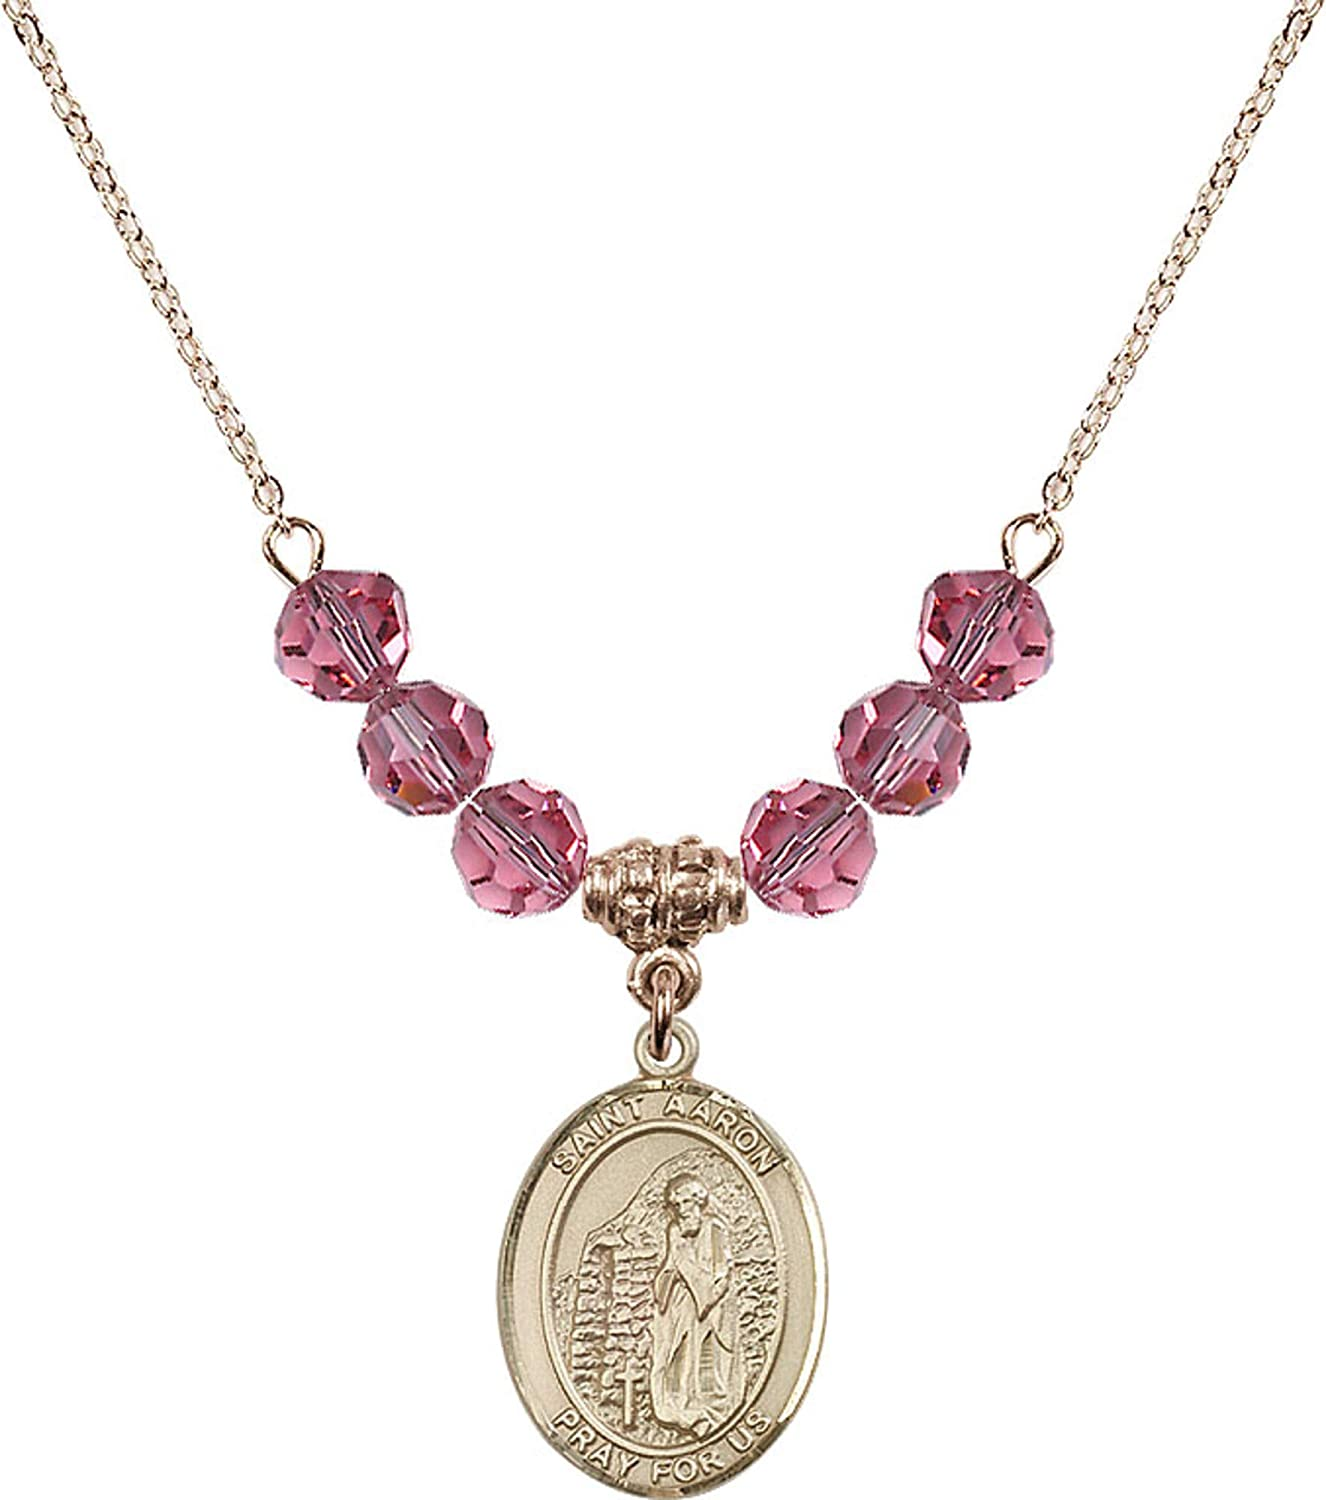 Bonyak Jewelry 18 Inch Hamilton Gold Plated Necklace w// 6mm Rose Pink October Birth Month Stone Beads and Saint Aaron Charm